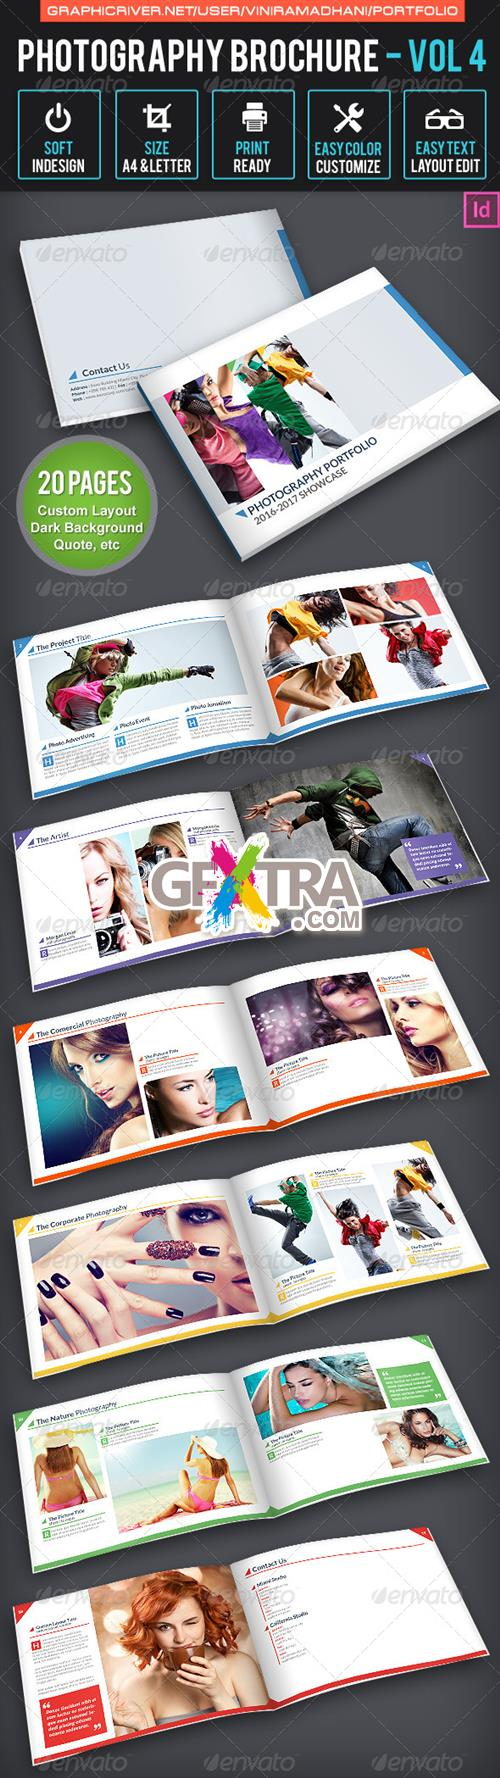 GraphicRiver - Photography Brochure | Volume 4